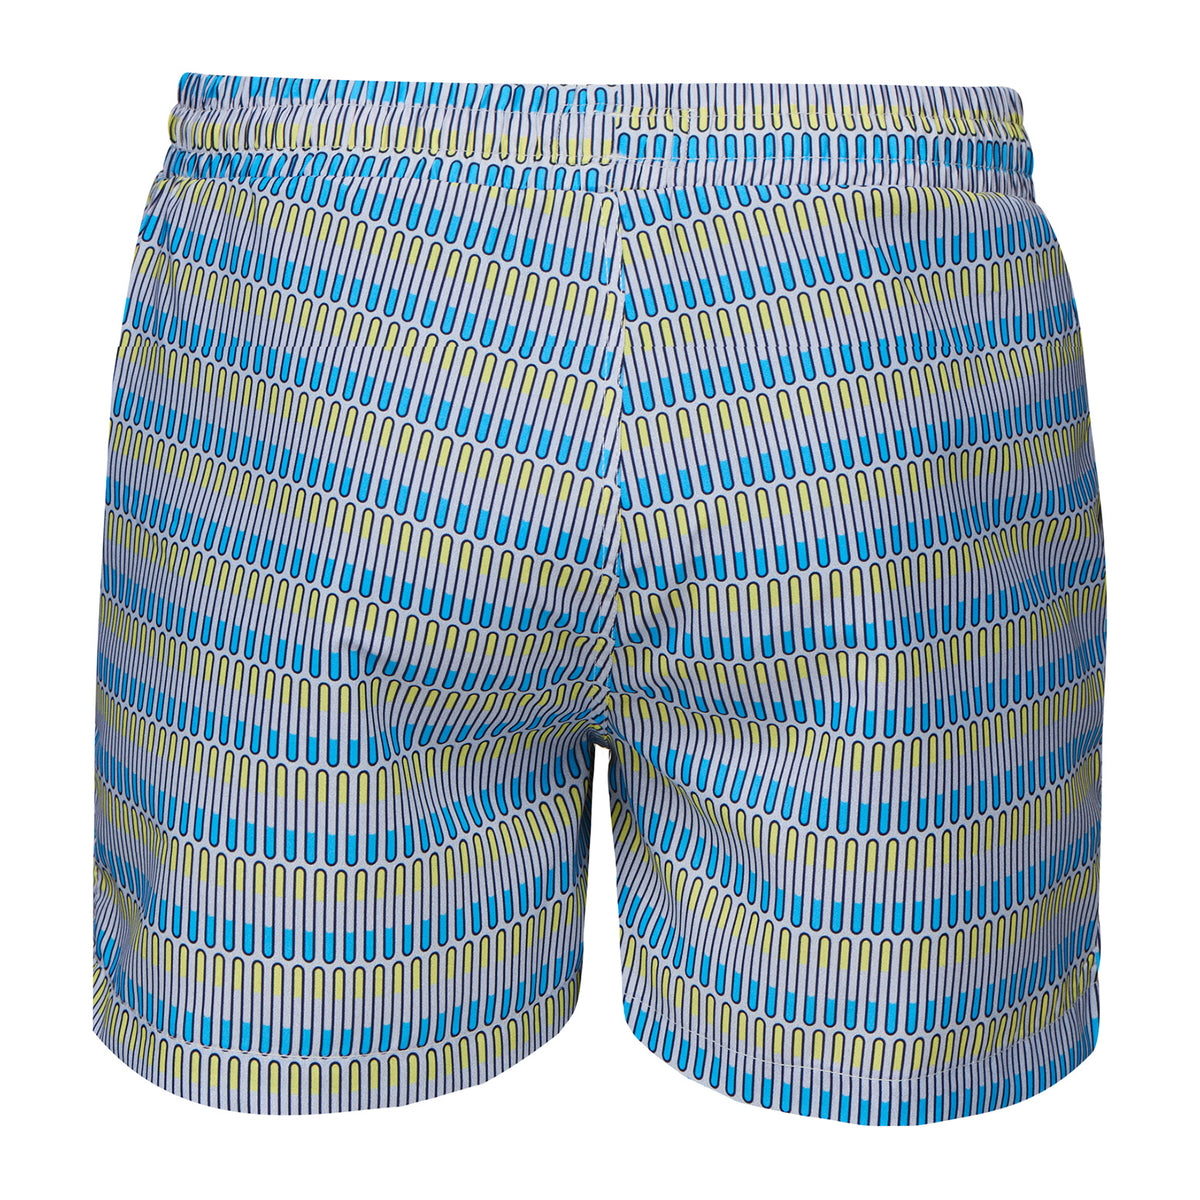 Breeze Swimshort Long - background::white,variant::Norse Wave